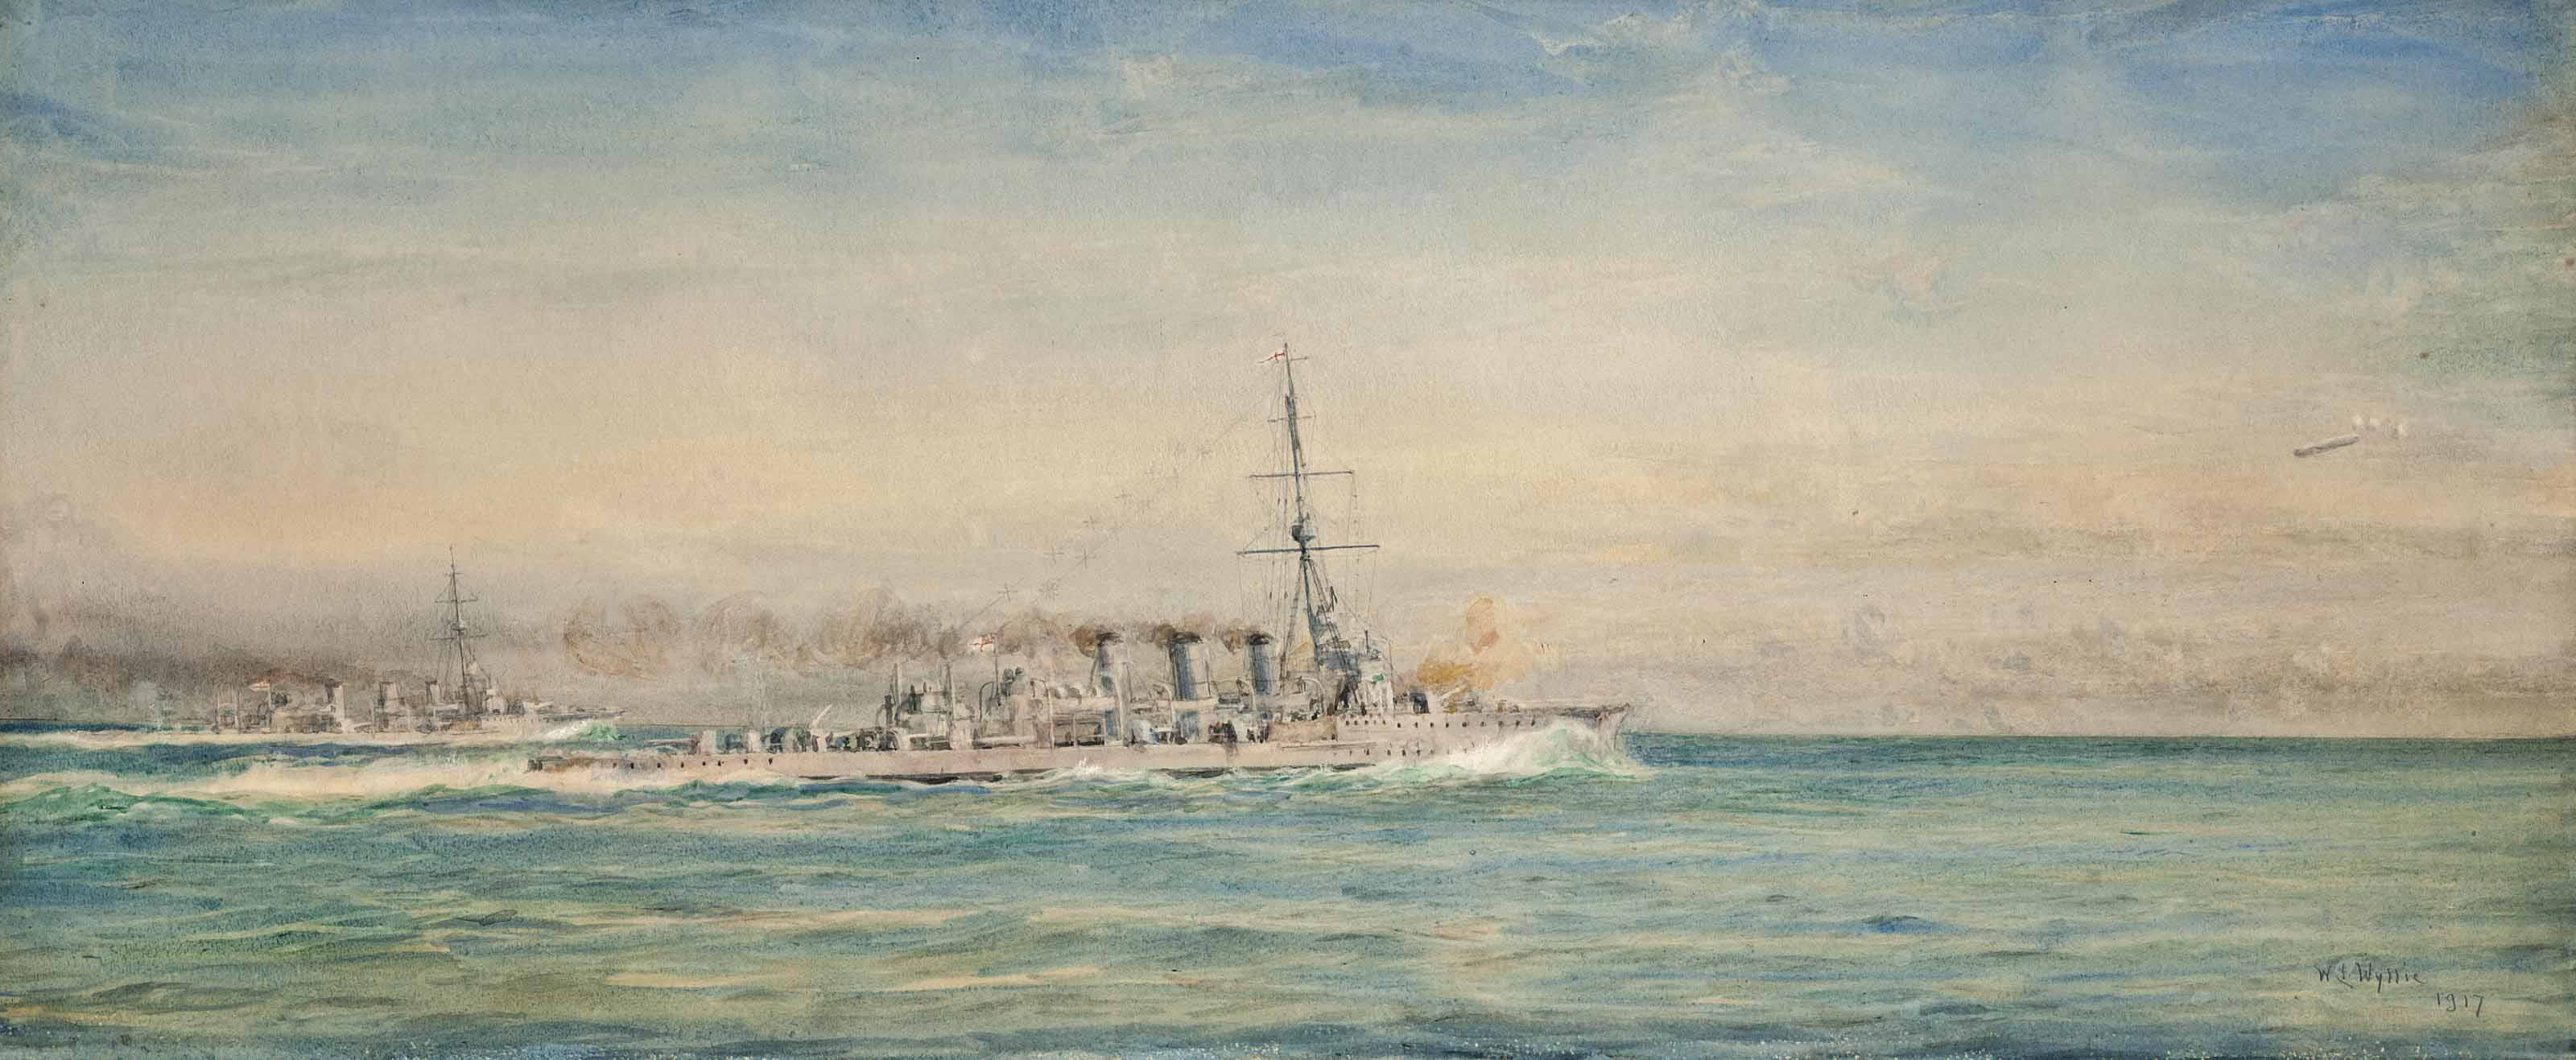 H.M.S. Galatea and her sistership, H.M.S. Phaeton, sighting and bringing down a Zeppelin off the Schleswig coast, 4th May 1916 (illustrated); and H.M.S. Galatea starting out for dark night patrol